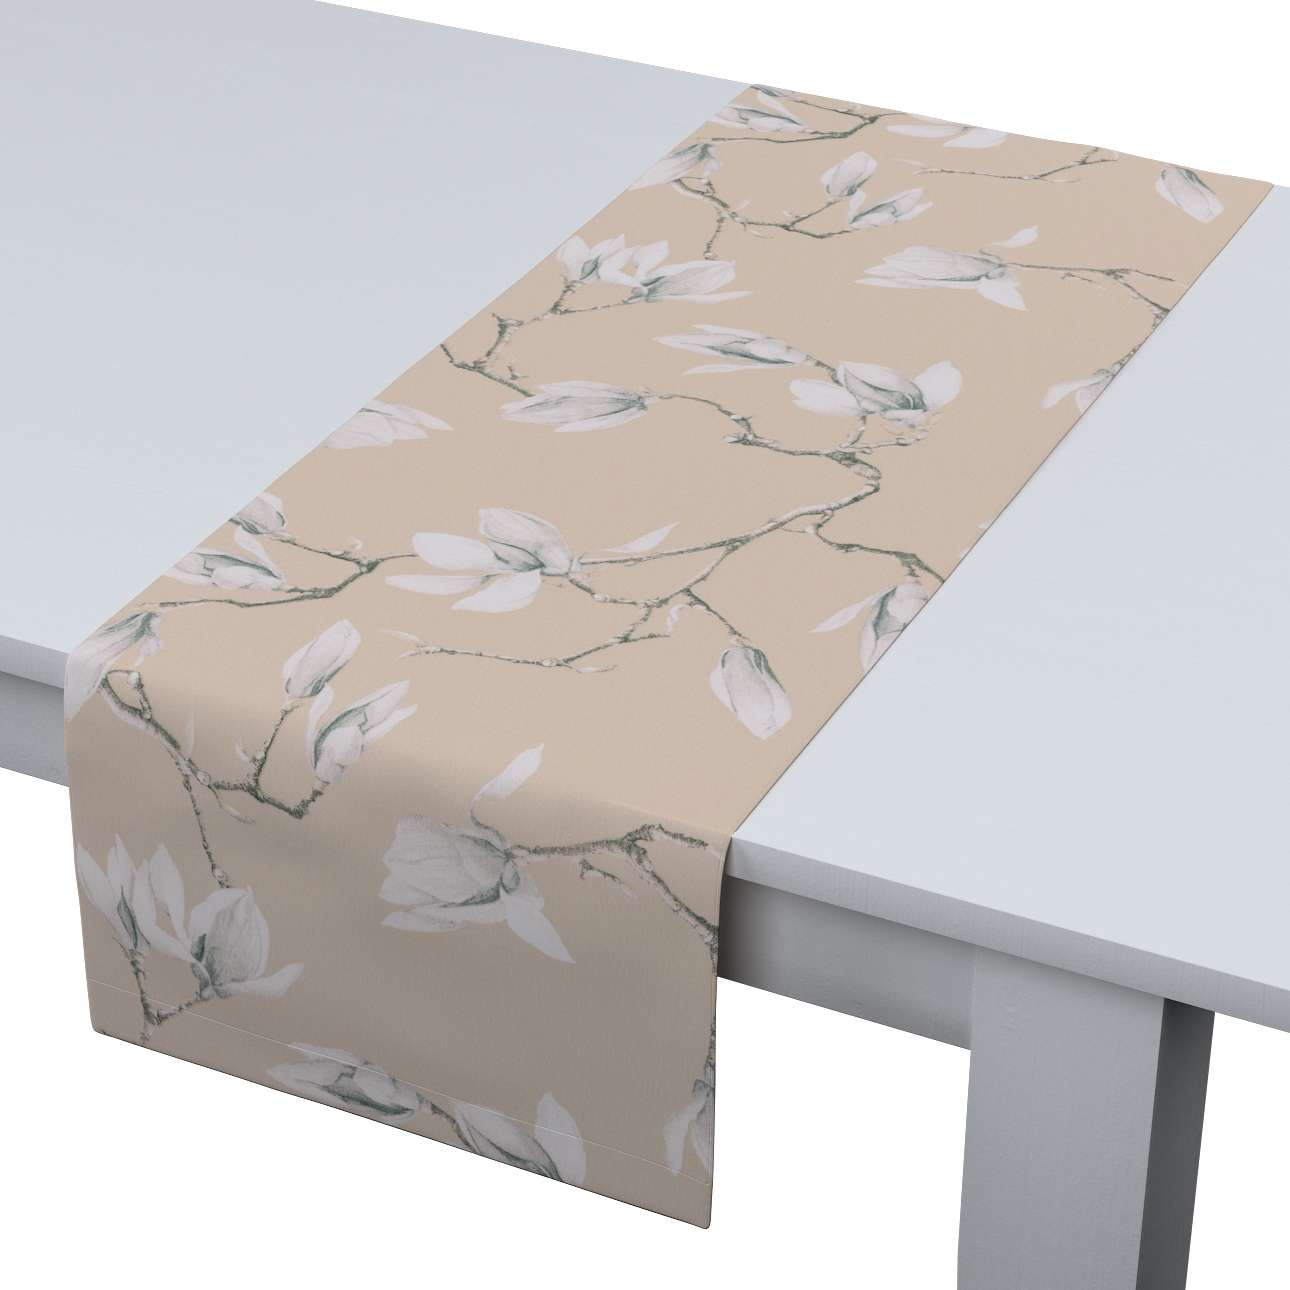 Table runner 40 x 130 cm (16 x 51 inch) in collection Flowers, fabric: 311-12